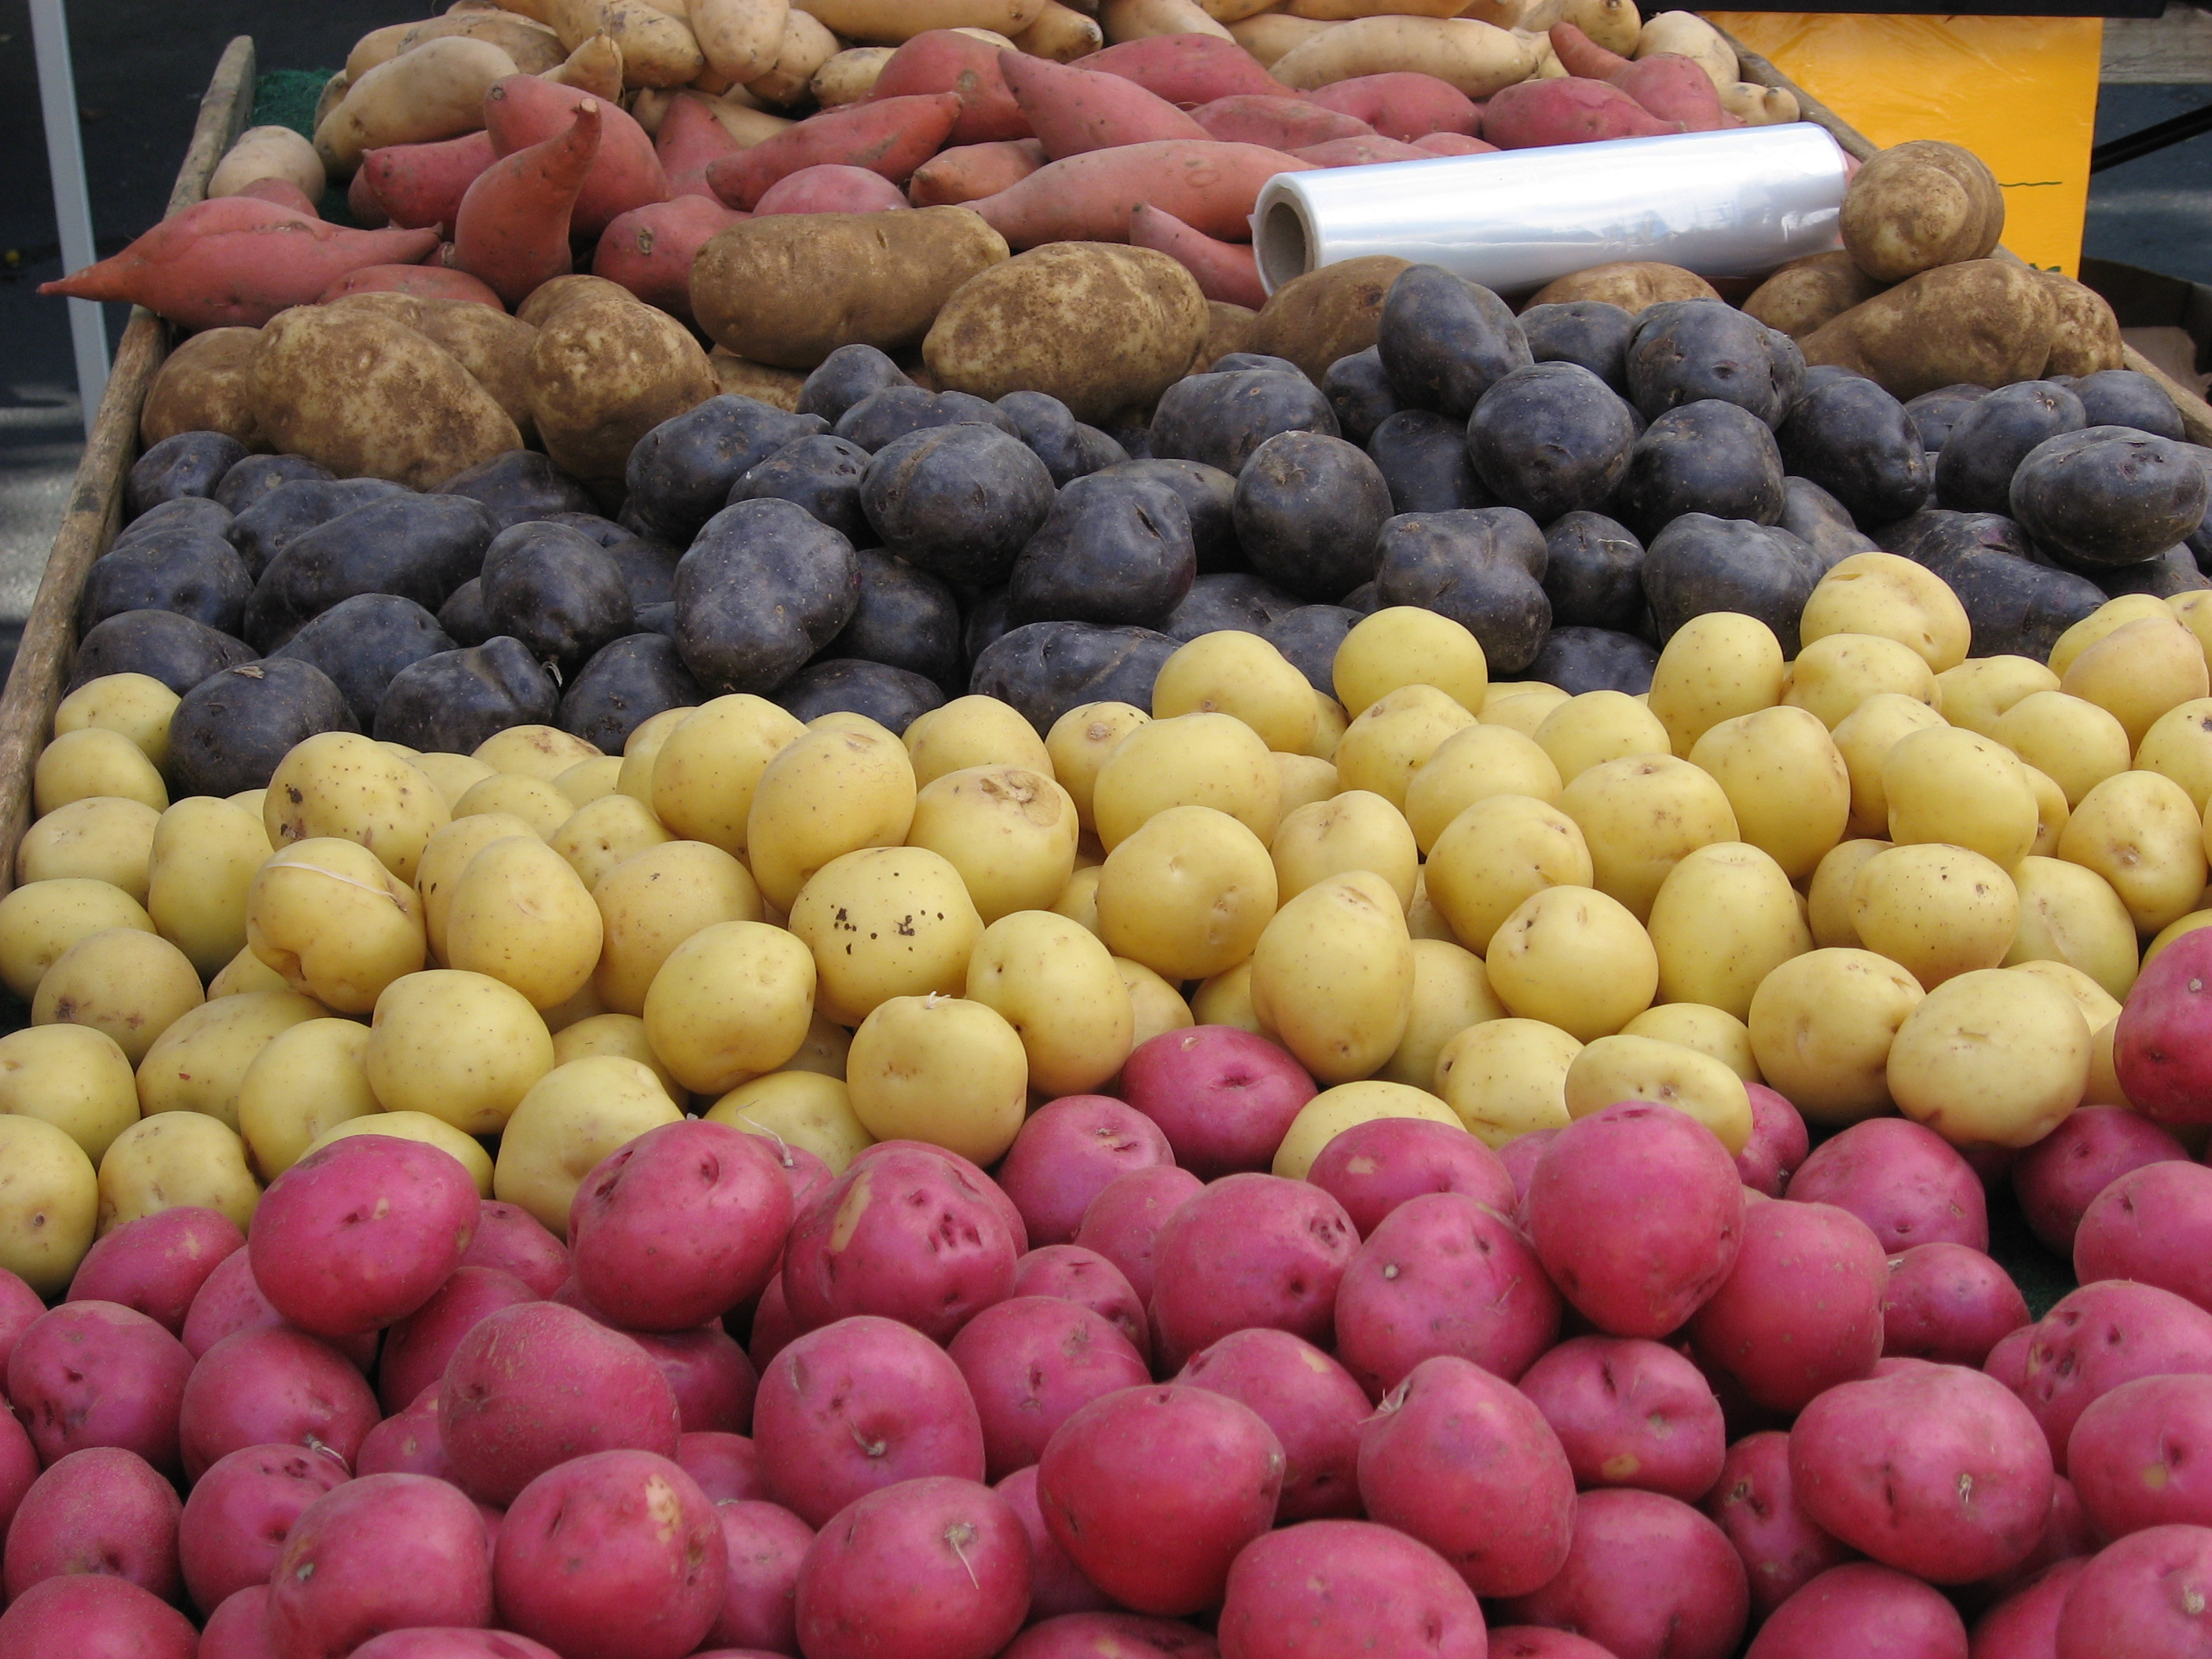 colored_potatoes.jpg